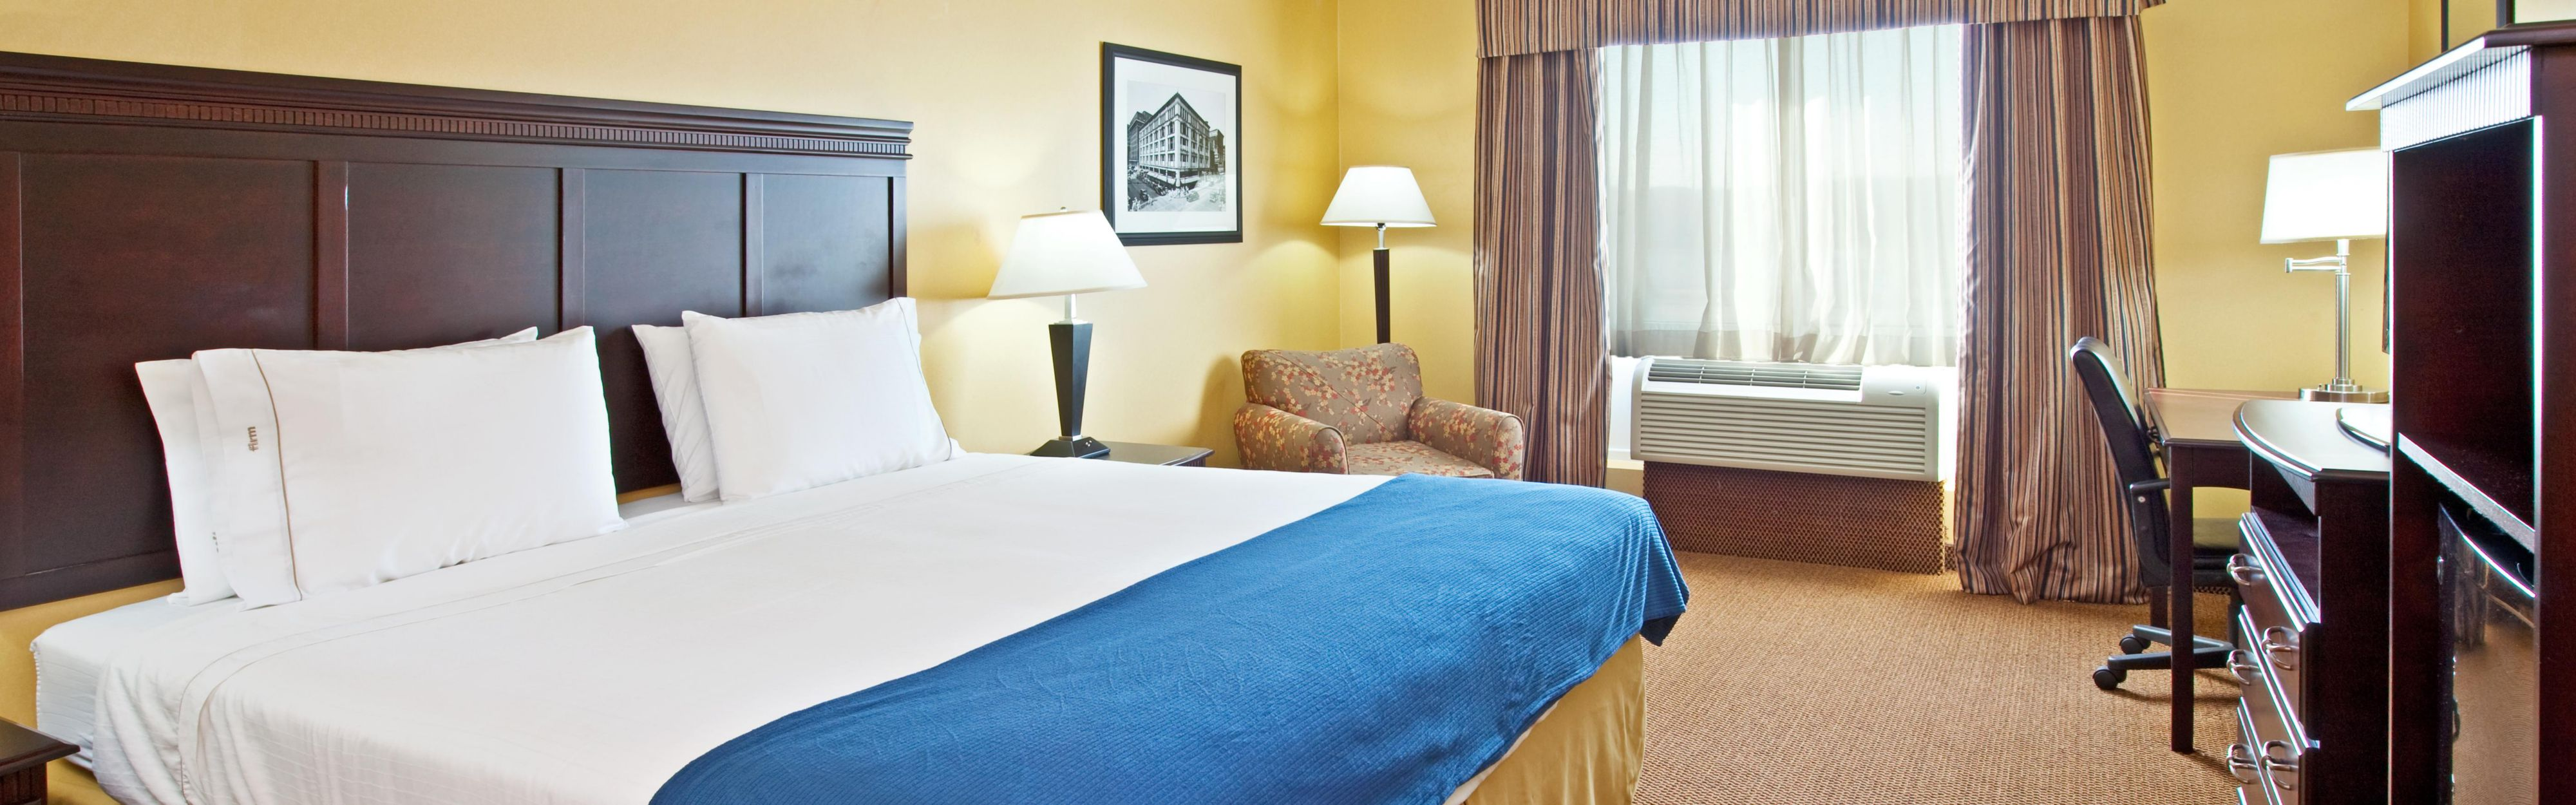 Holiday Inn Express Louisville South-Hillview image 1